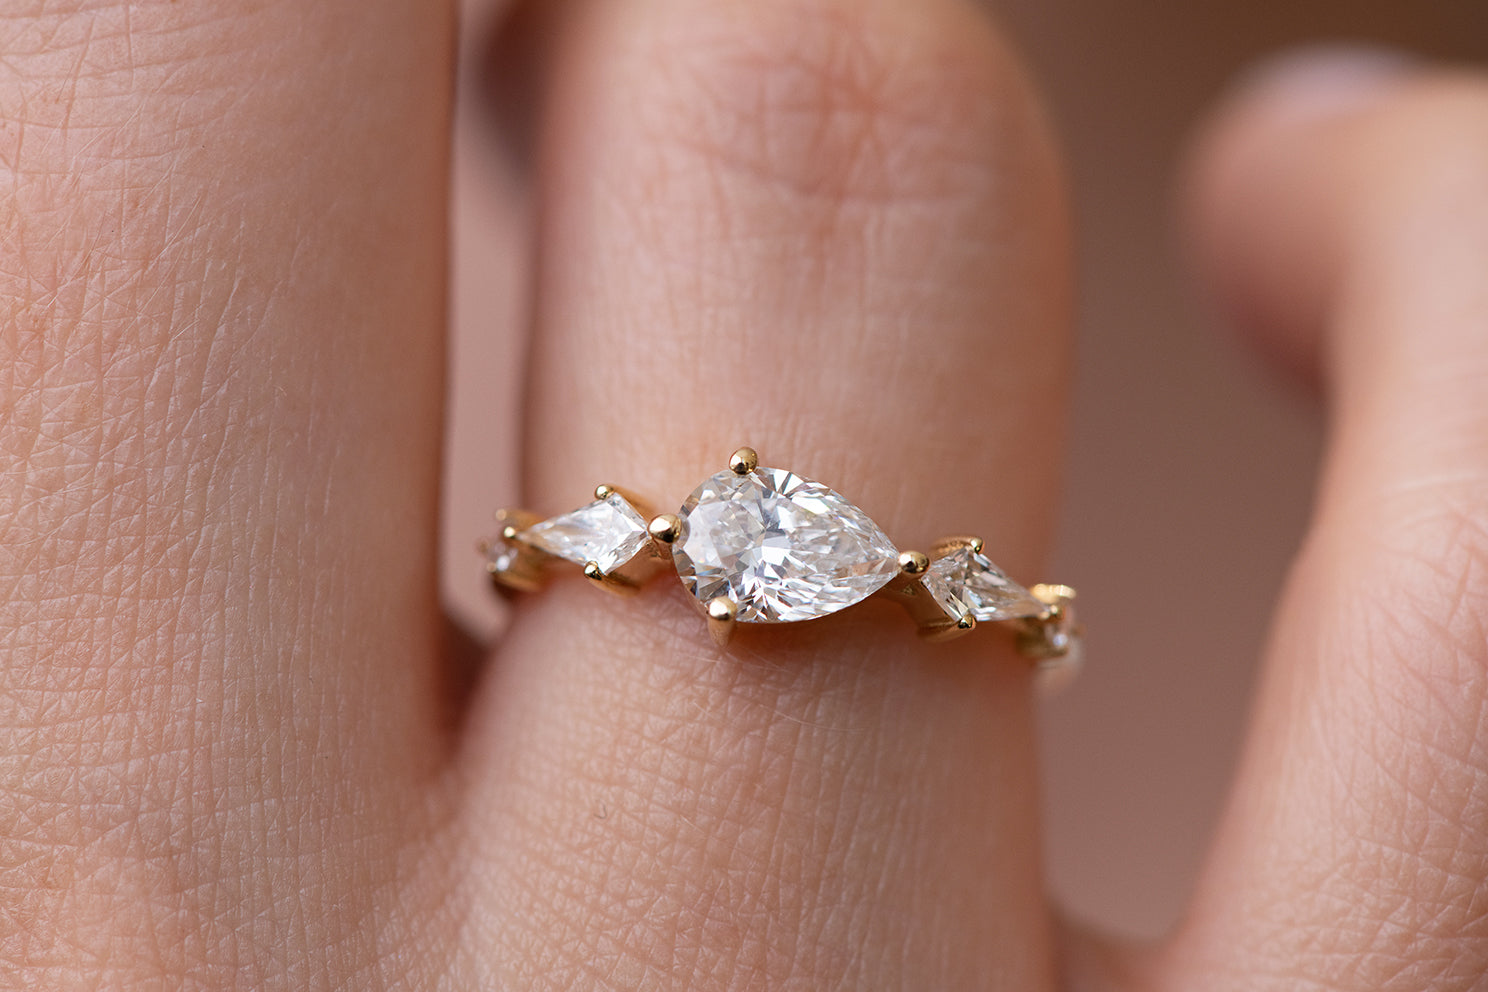 Pear Shaped Engagement Ring - Diamond Lineup Ring Up Close Front View